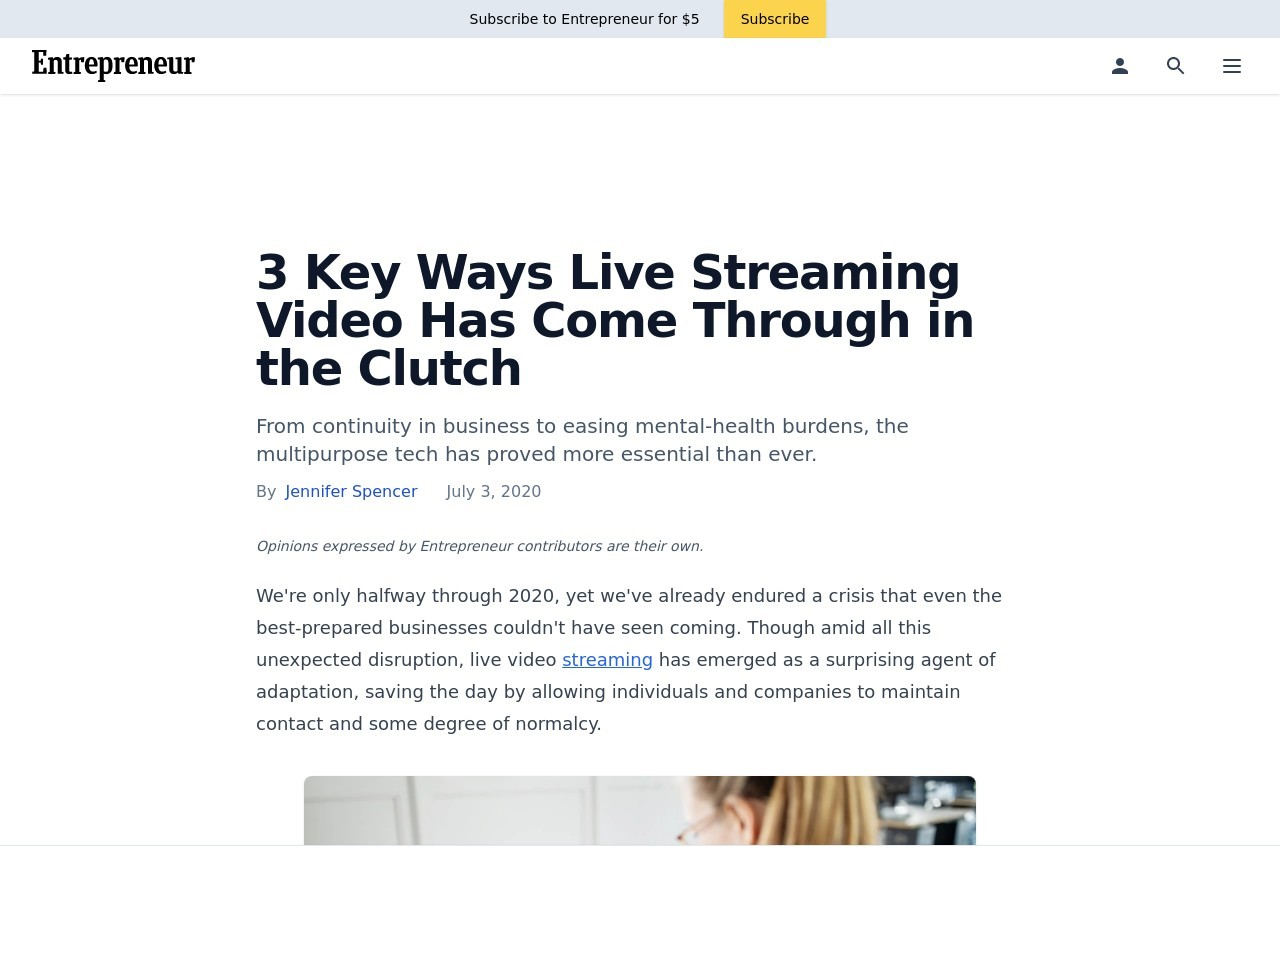 3 Key Ways Live Streaming Video Has Come Through in the Clutch